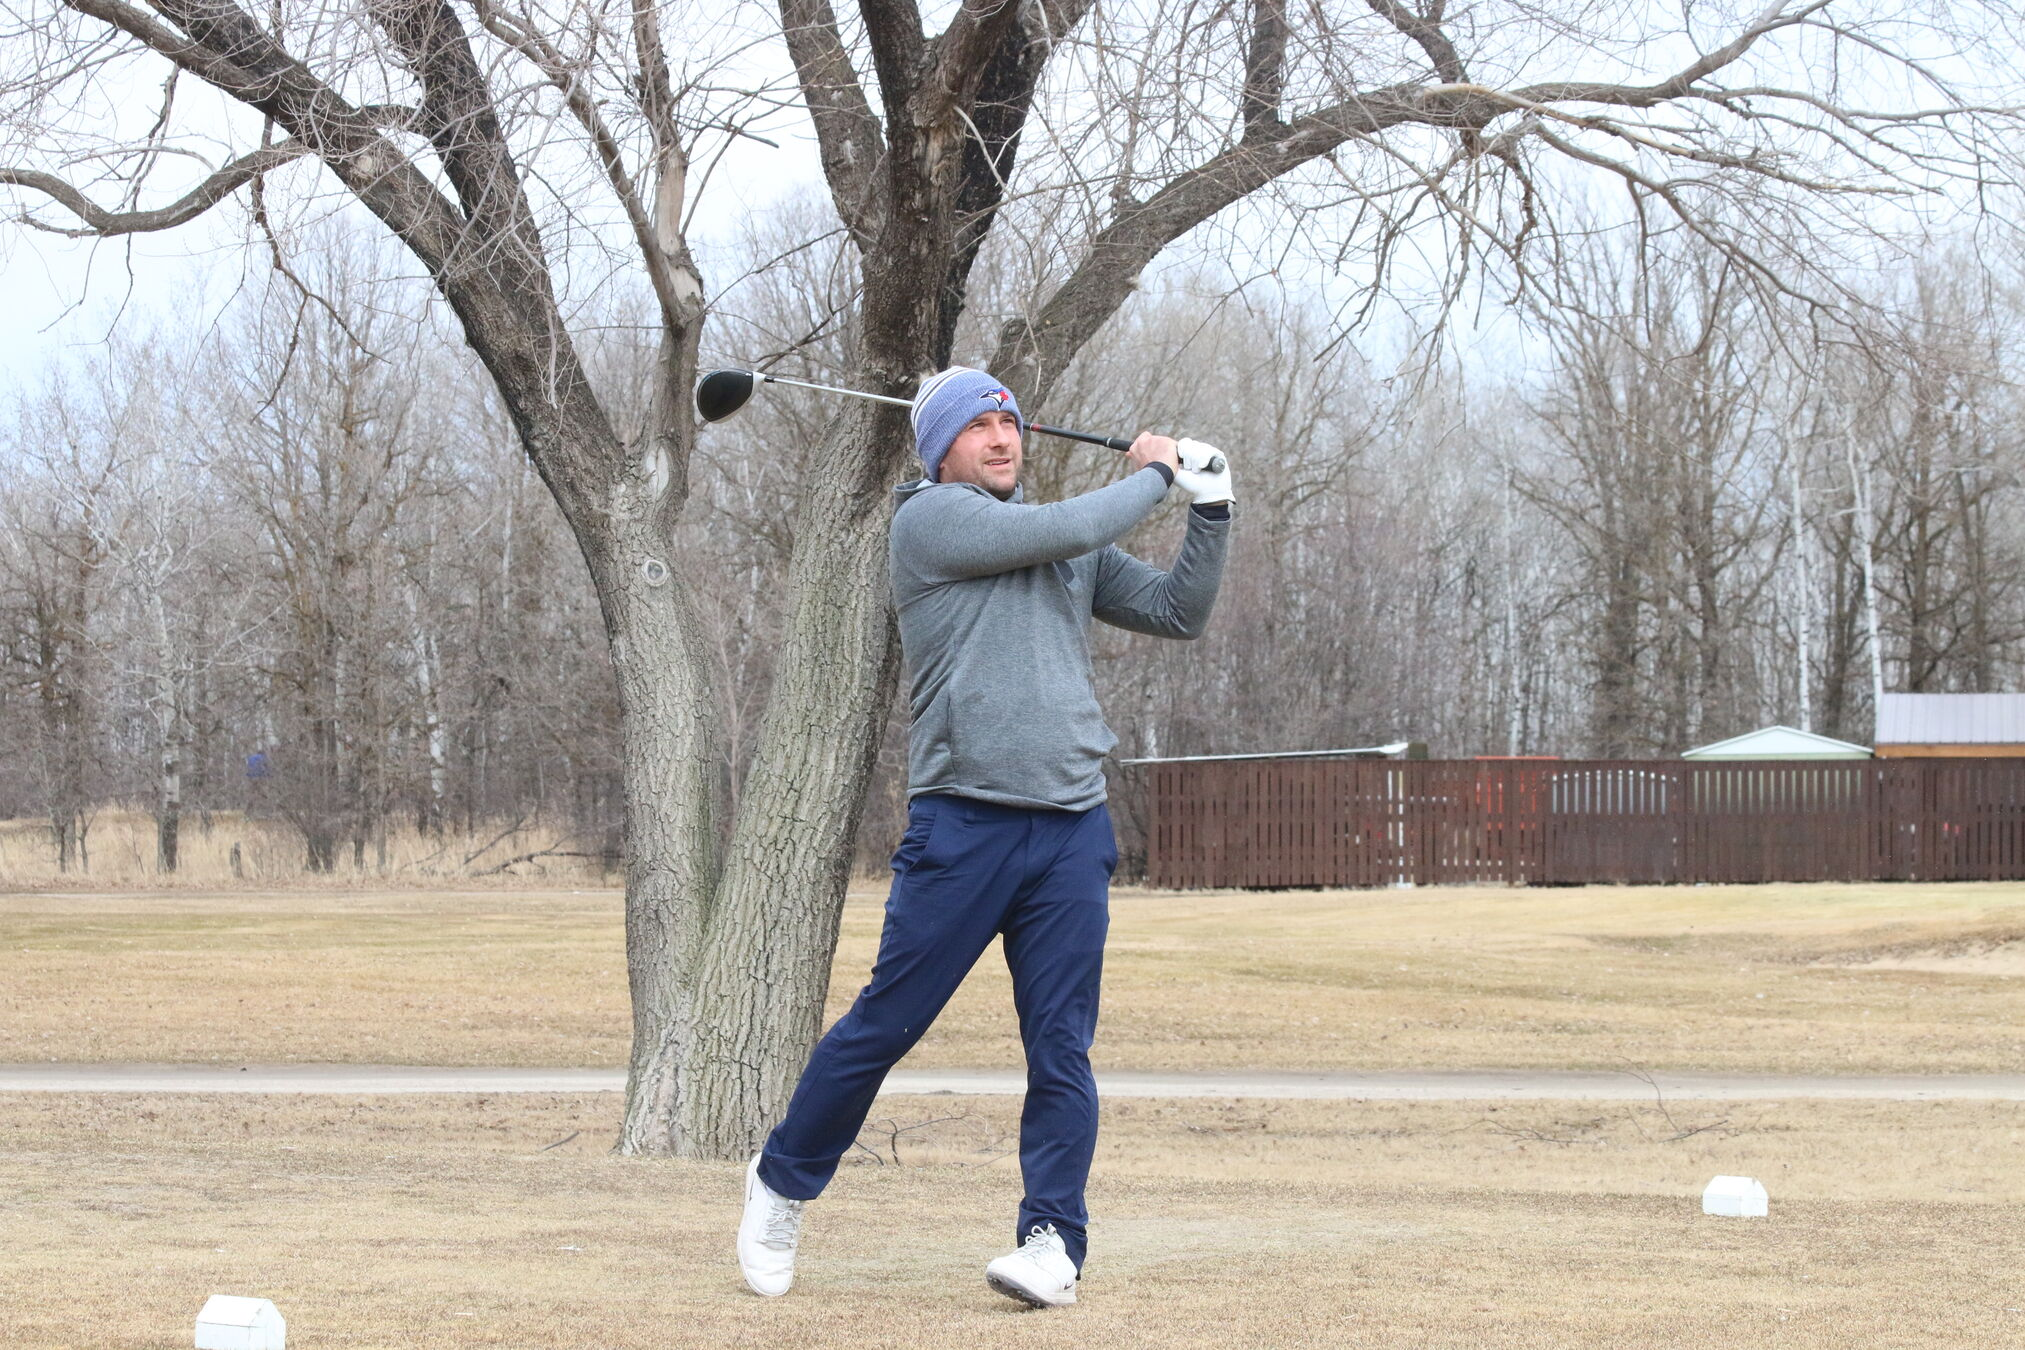 With the temperature surpassing 20 degrees on Monday, Dan Patenaude tees off at a packed Oakwood Golf Course in his first round of the year.